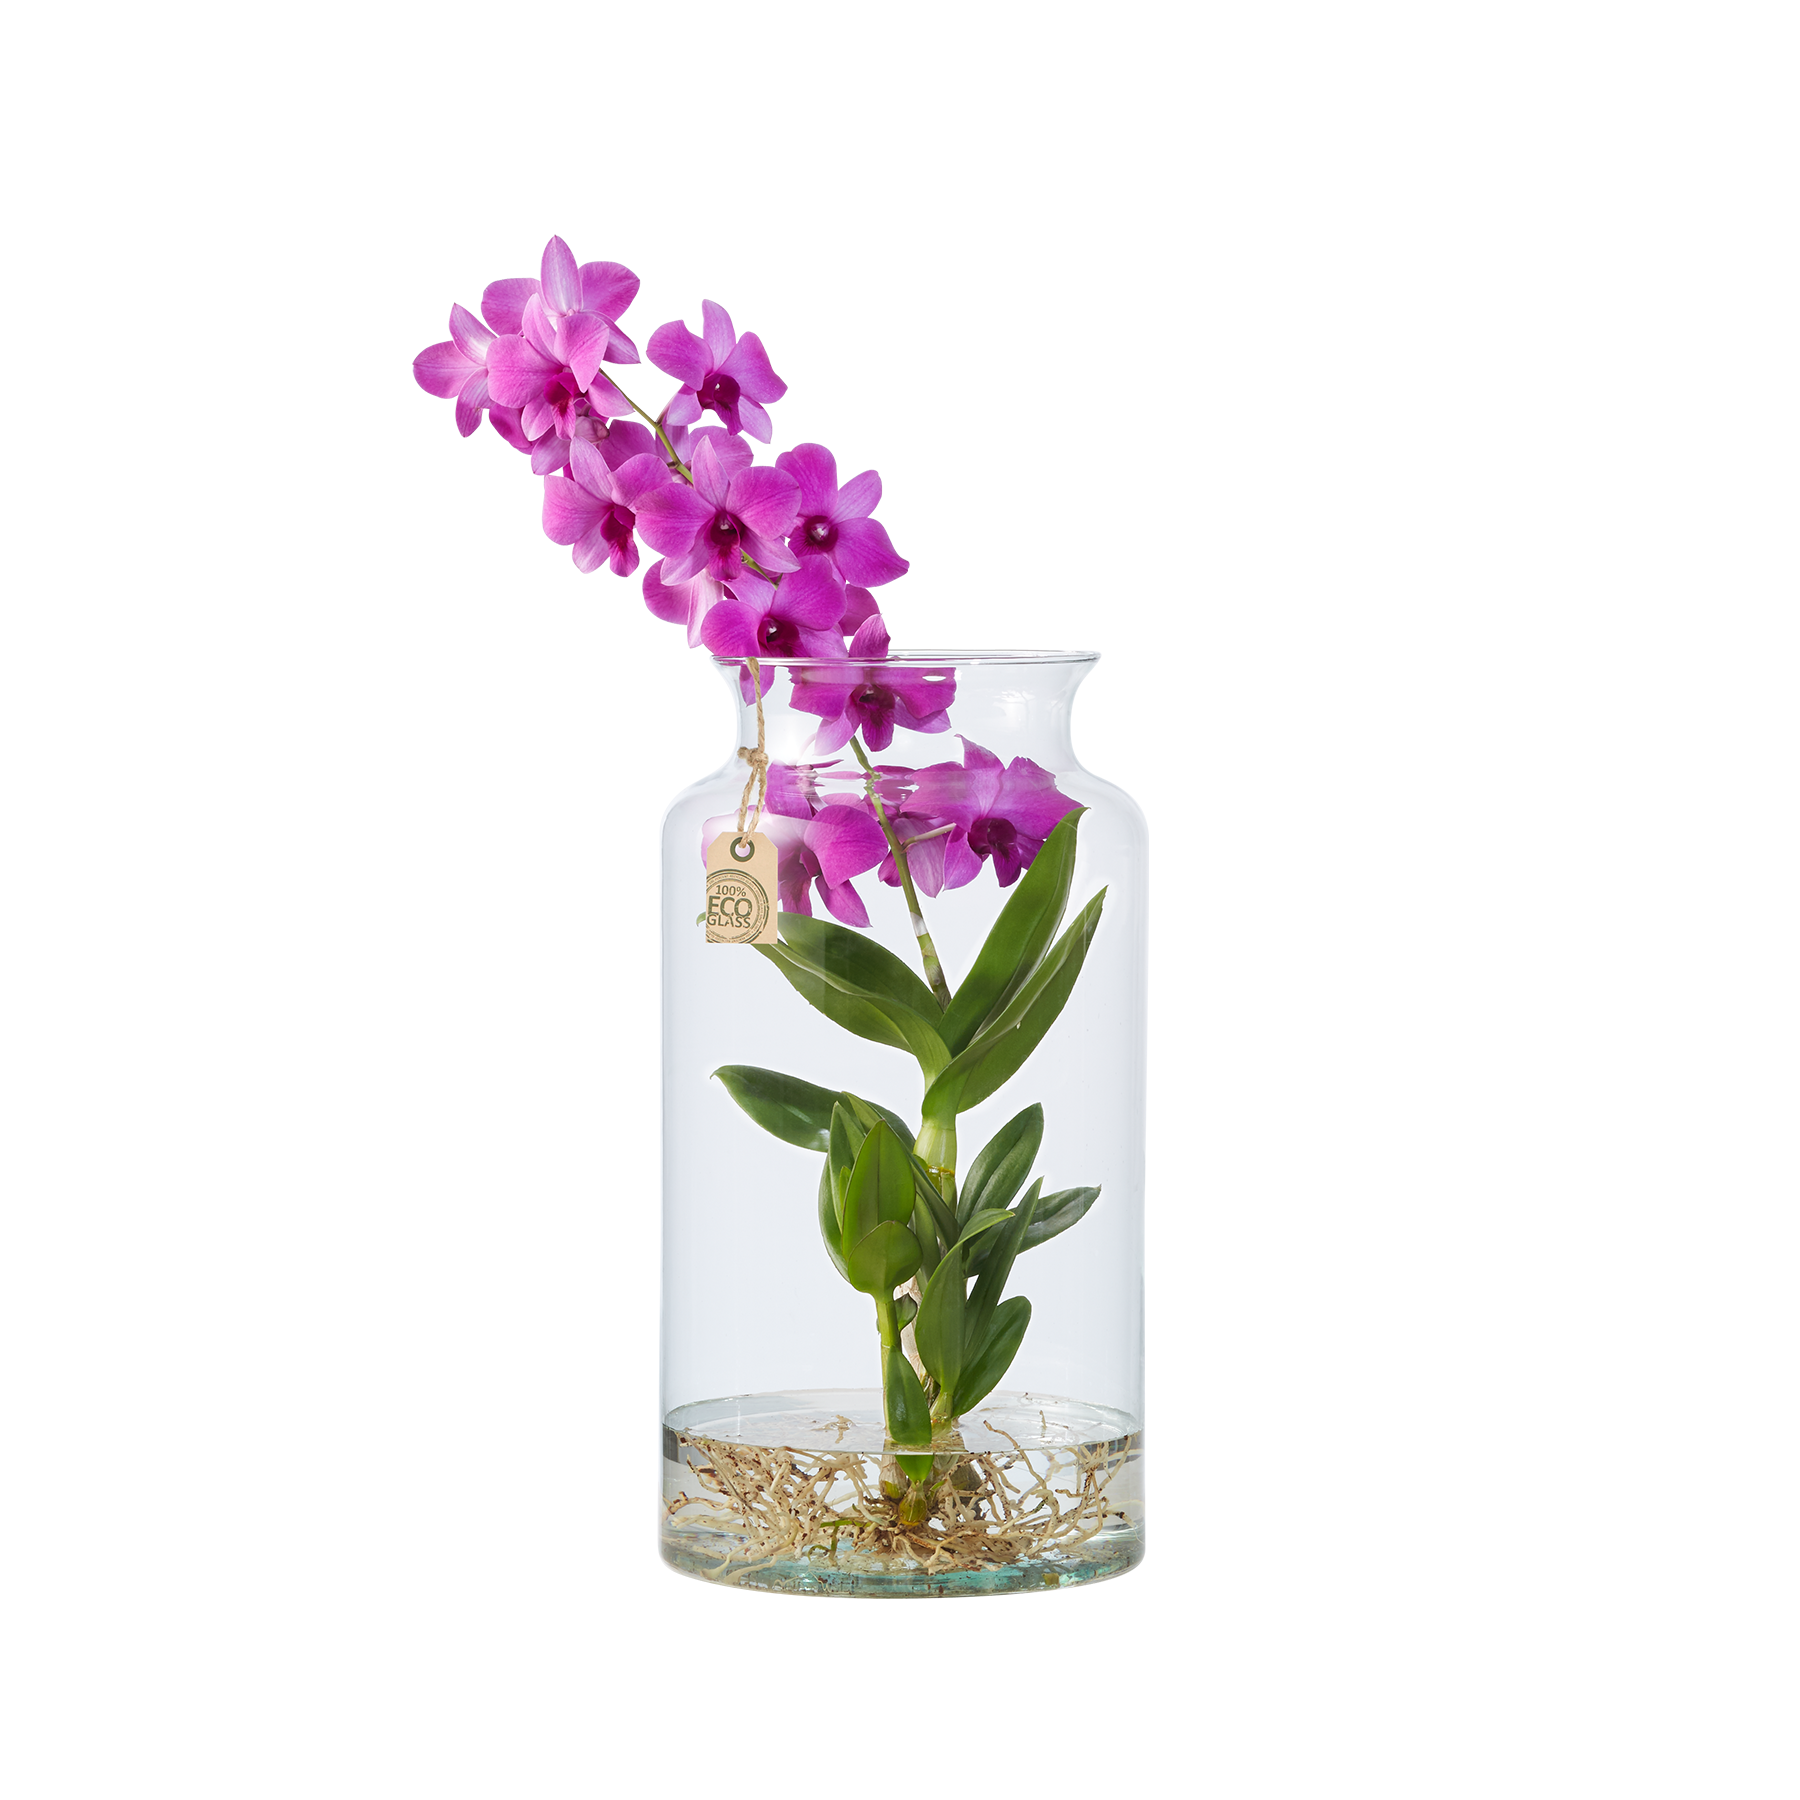 dendrobium water plant in eco vase 100190. Black Bedroom Furniture Sets. Home Design Ideas